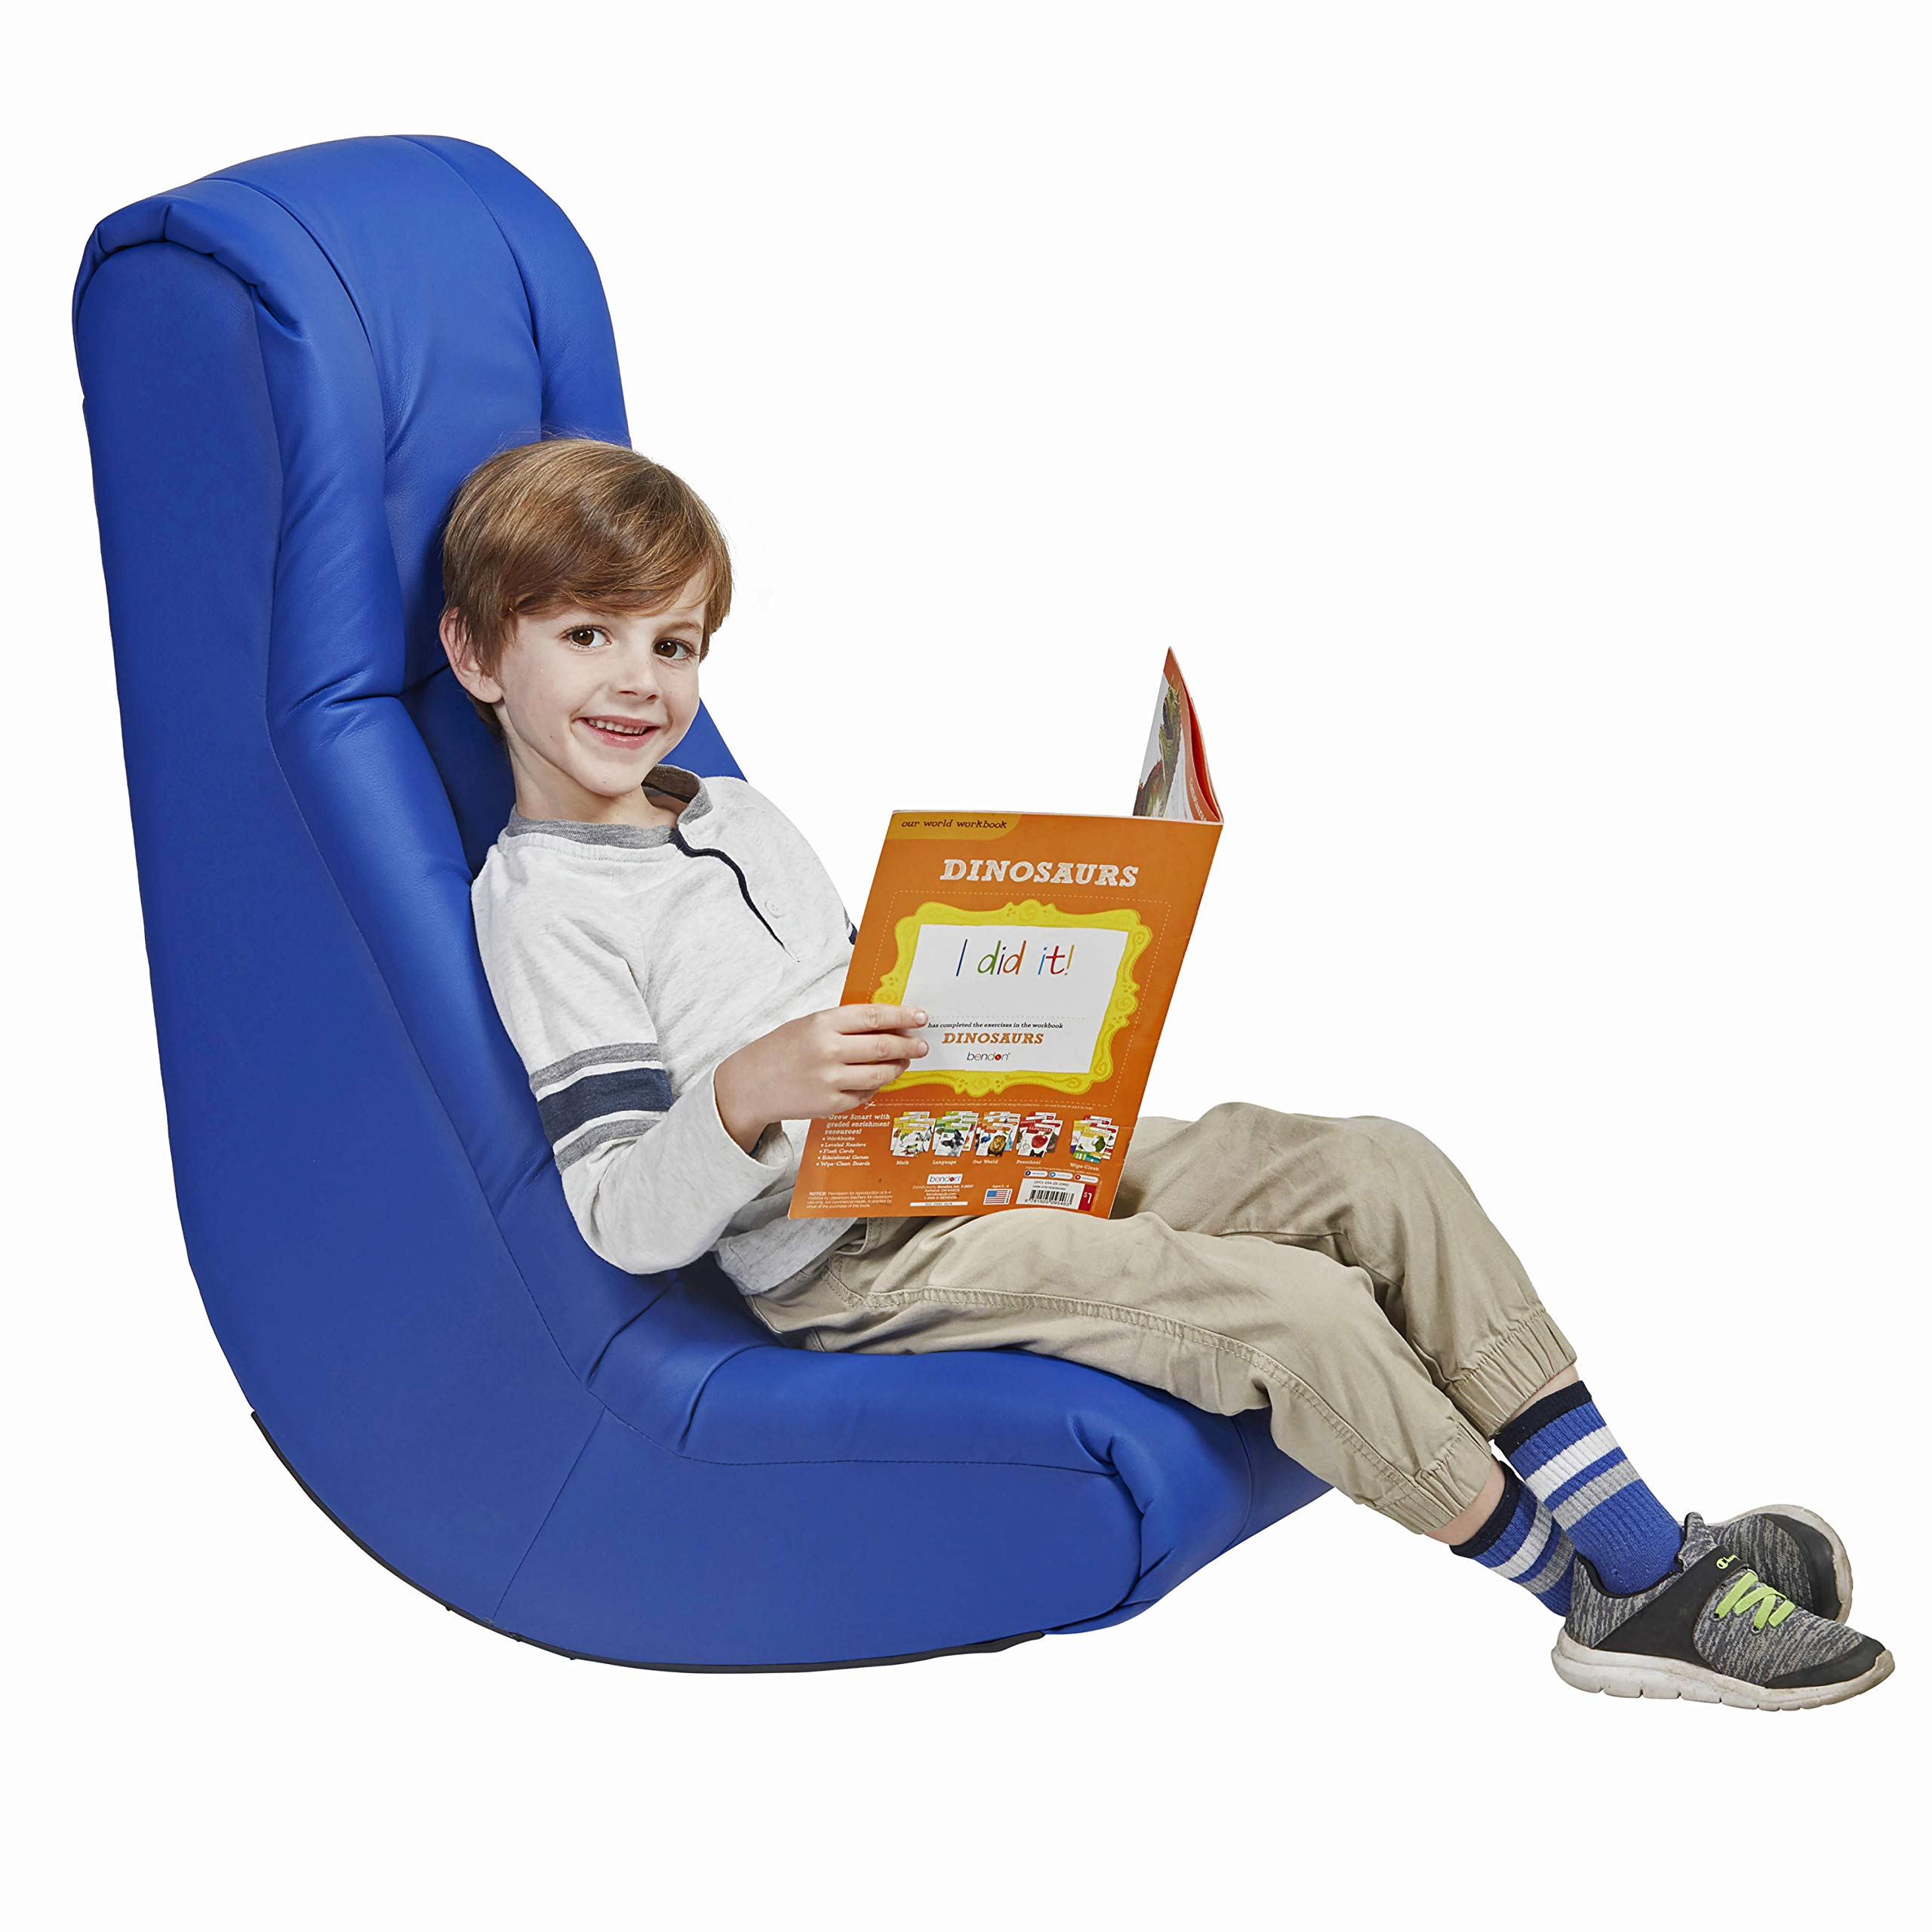 Soft Video Rocker - Cushioned Floor Chair for Kids, Teens and Adults - Great for Reading, Gaming, Meditating, TV - Blue